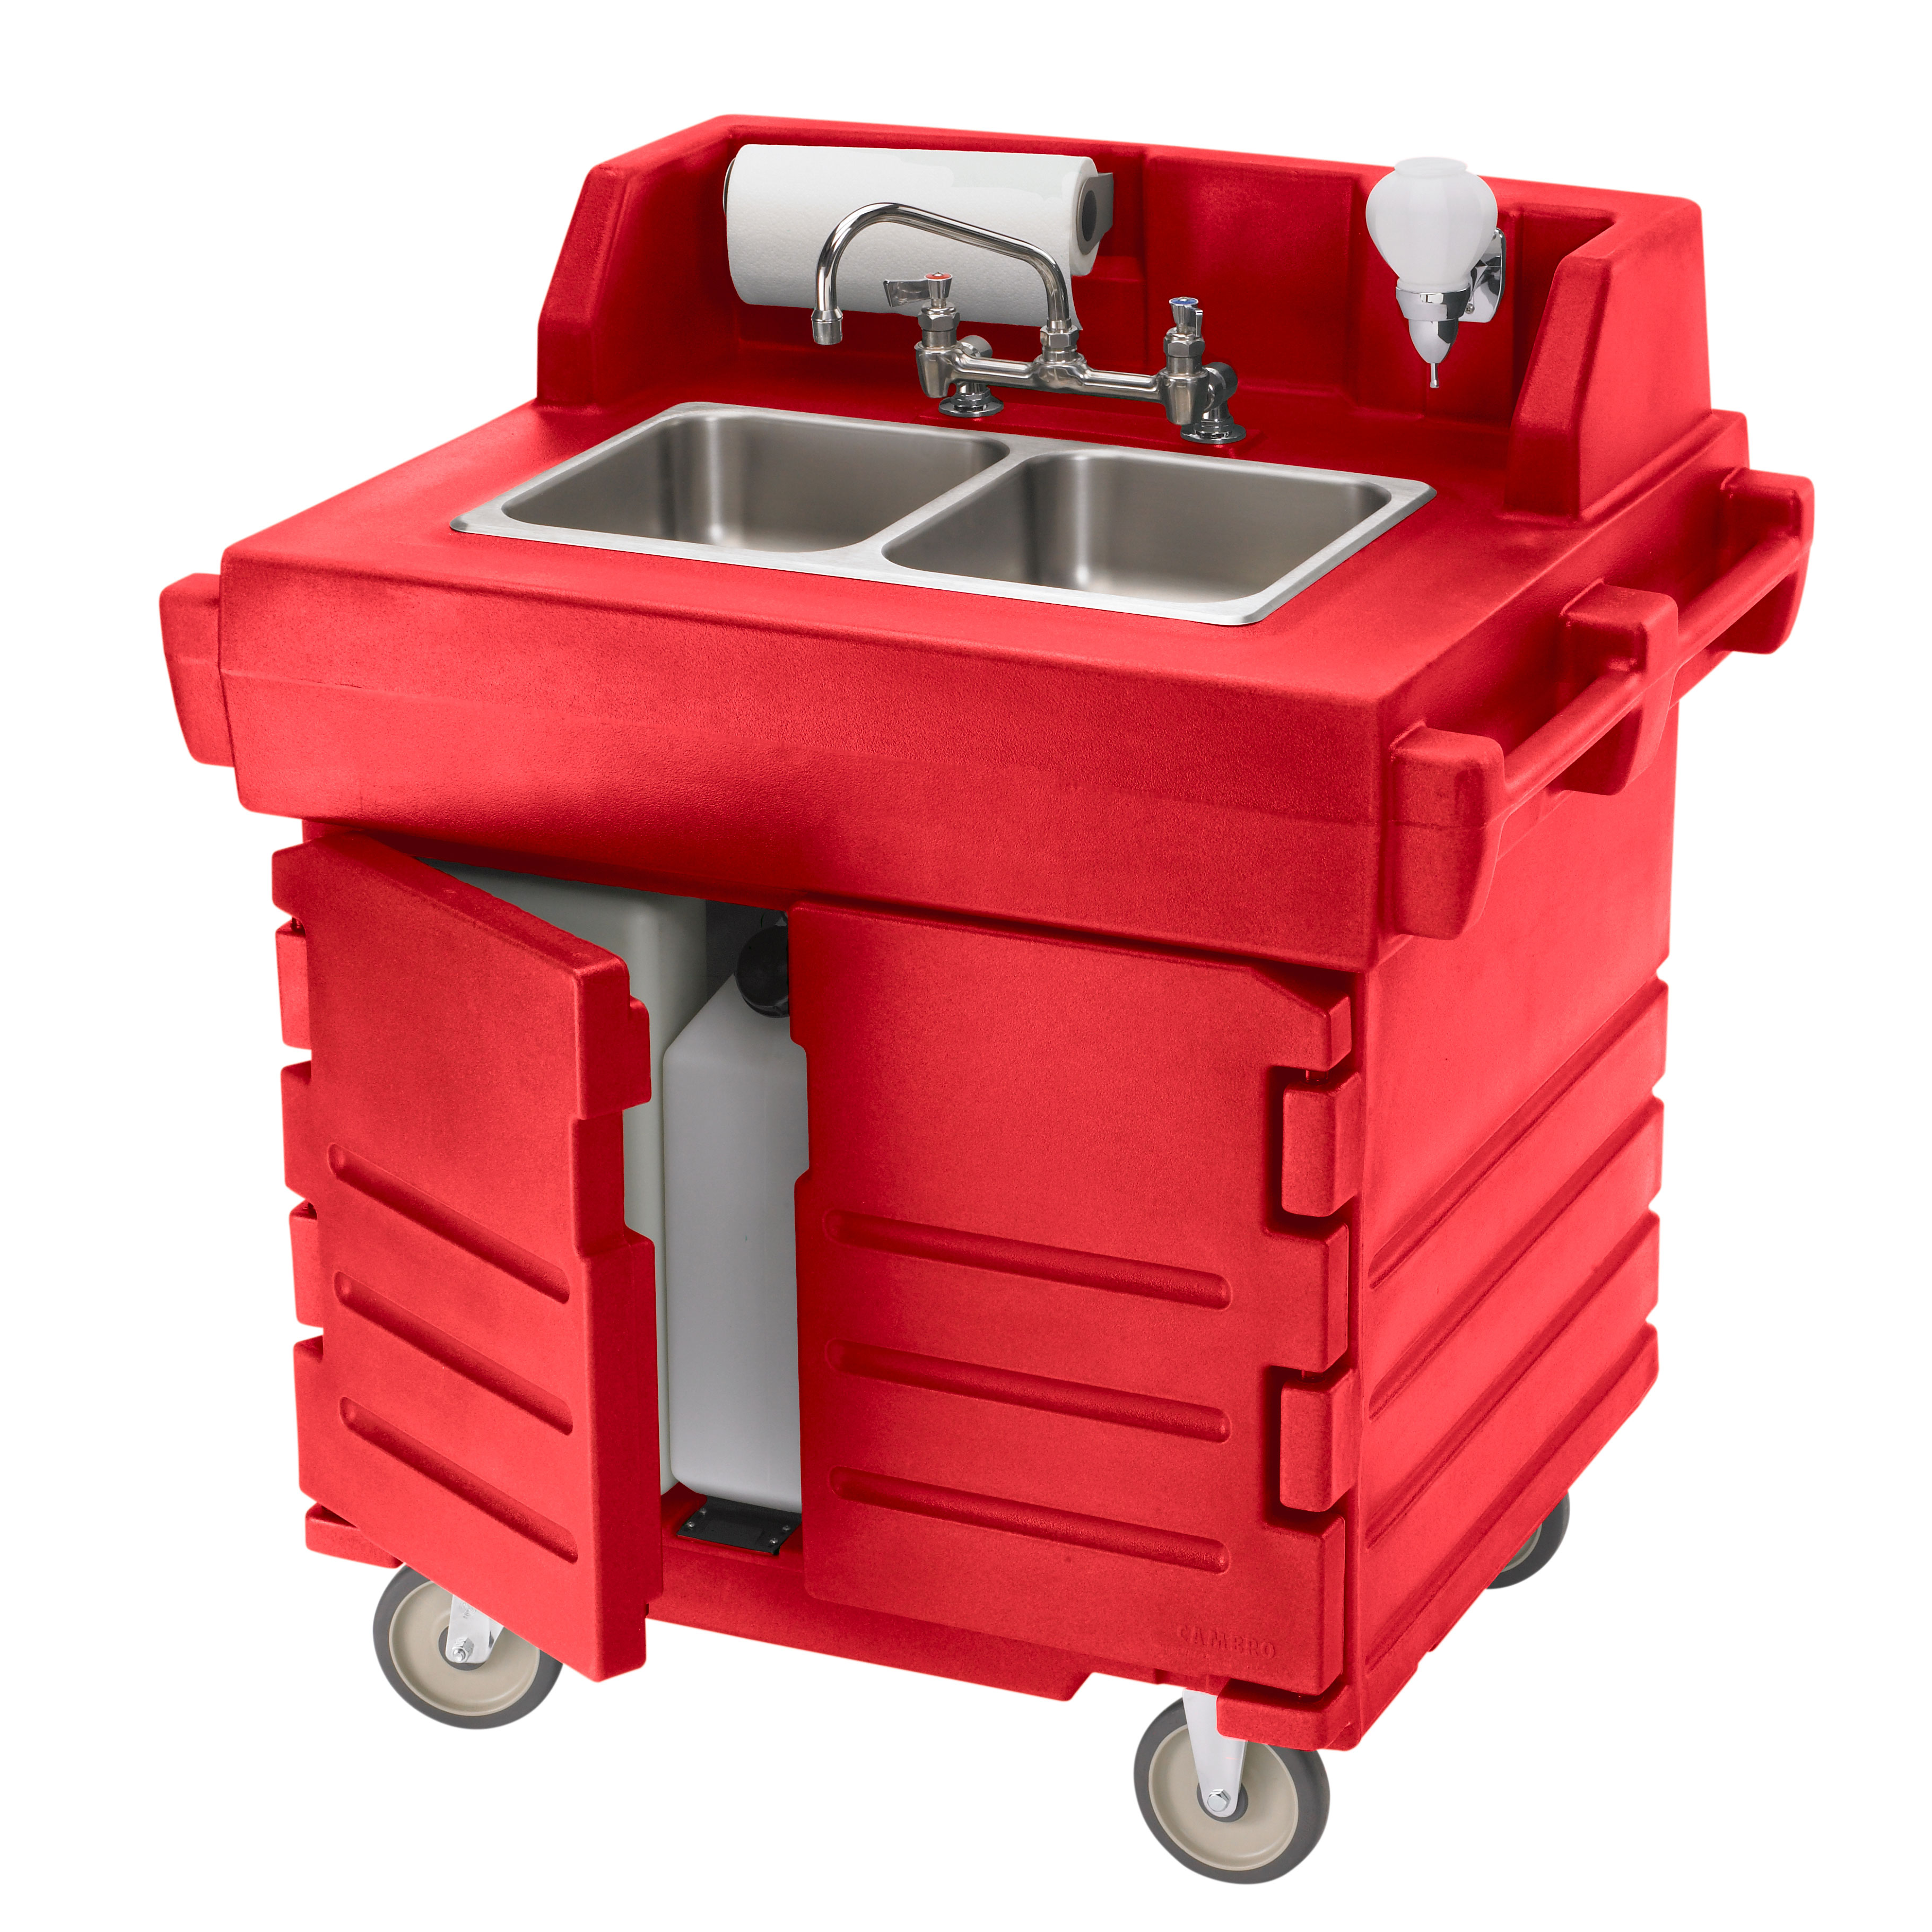 Cambro KSC402158 hand sink, mobile